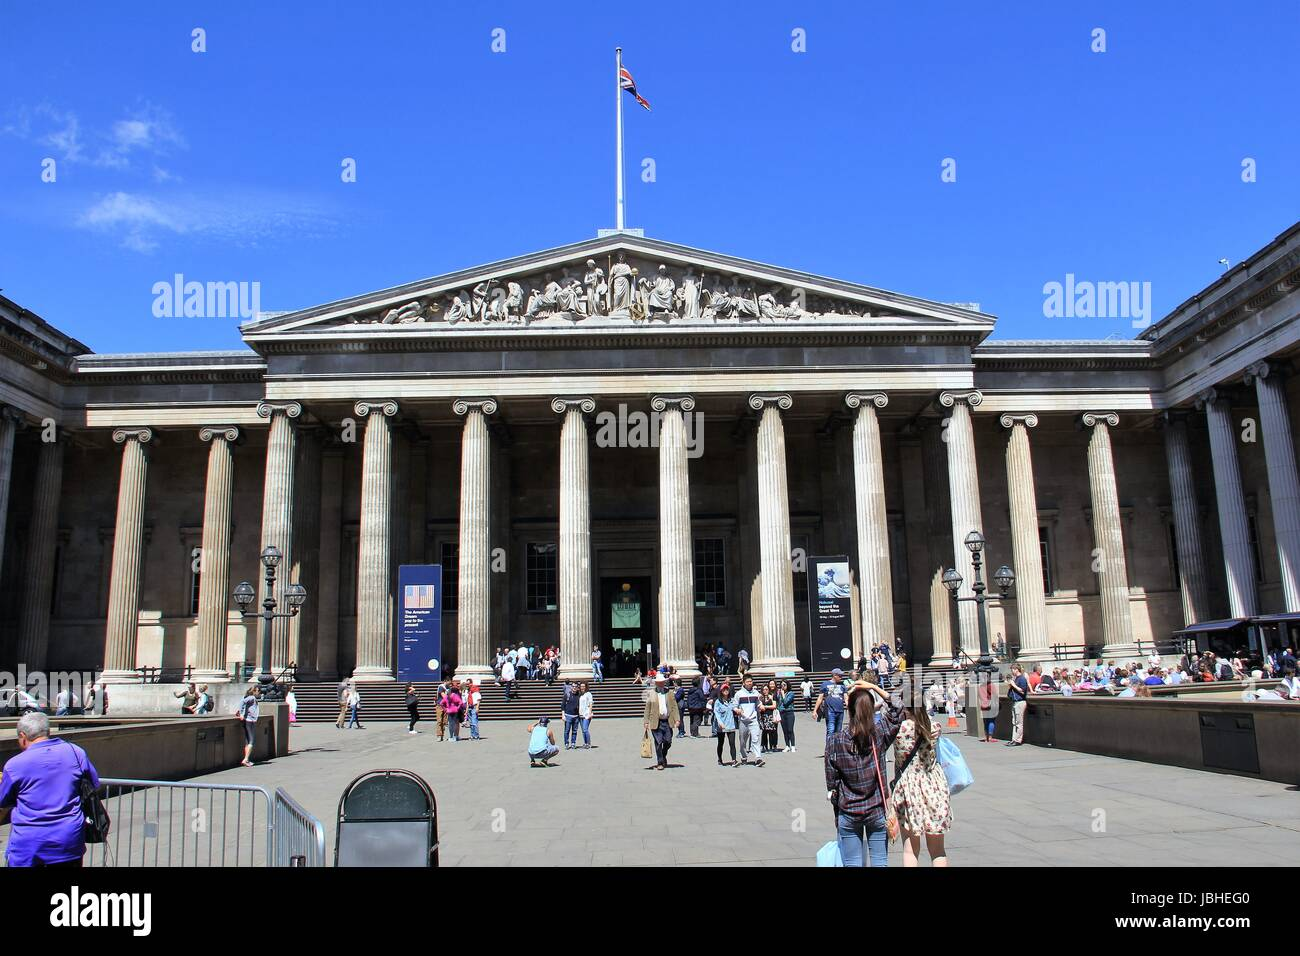 British Museum - main courtyard and entrance - Stock Image